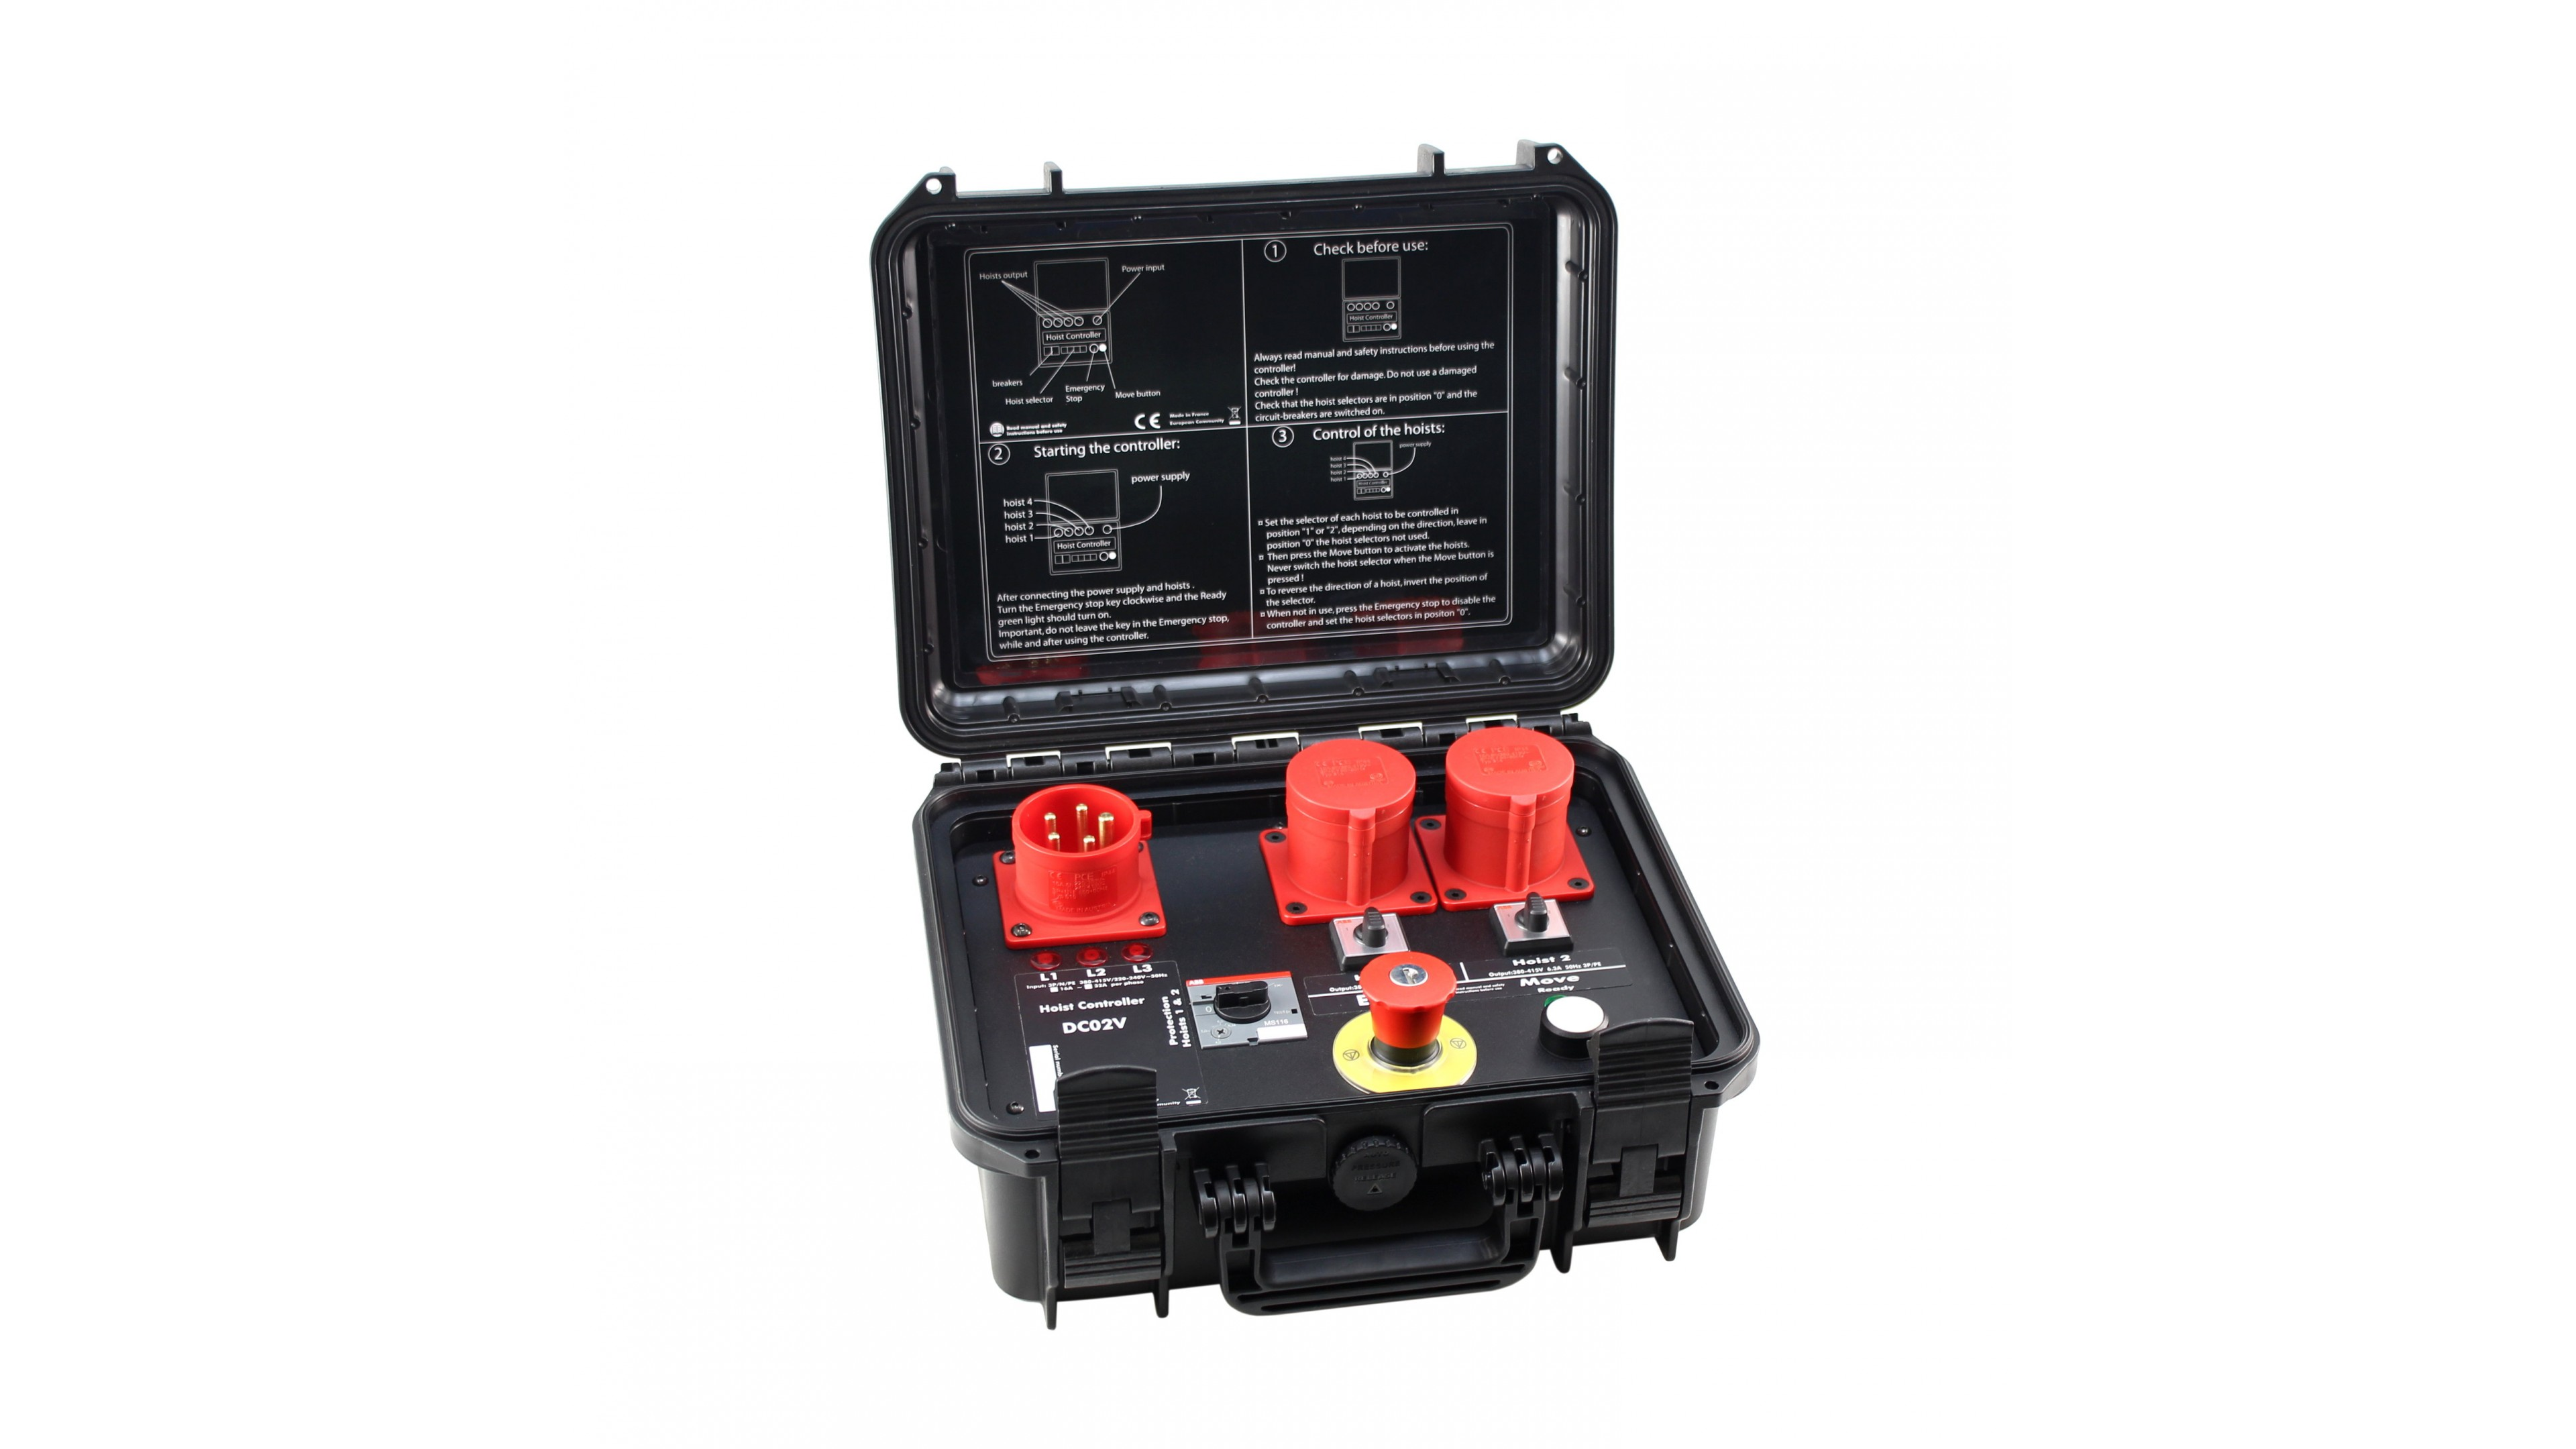 Hoist Controller For 2 Hoists Hard Waterproof Case Made In France Electrical Wiring Channels Local Control